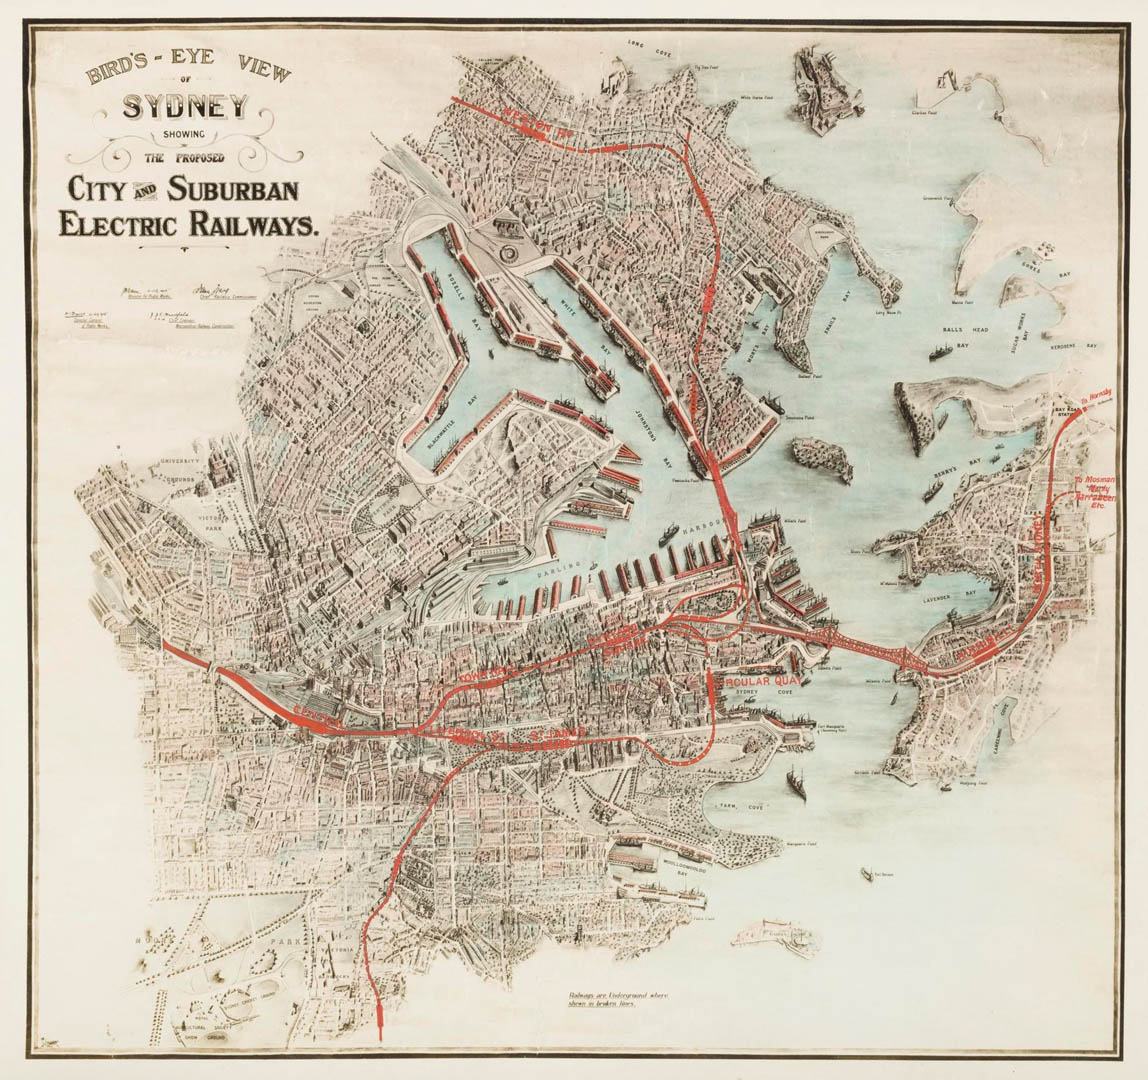 Bird's eye view of Sydney showing the proposed city and suburban electric railways [cartographic material] / by J.J.C. Bradfield, Chief Engineer, Metropolitan Railway Construction. Bradfield, J. J. C. 1867-1943. (John Job Crew): 1915